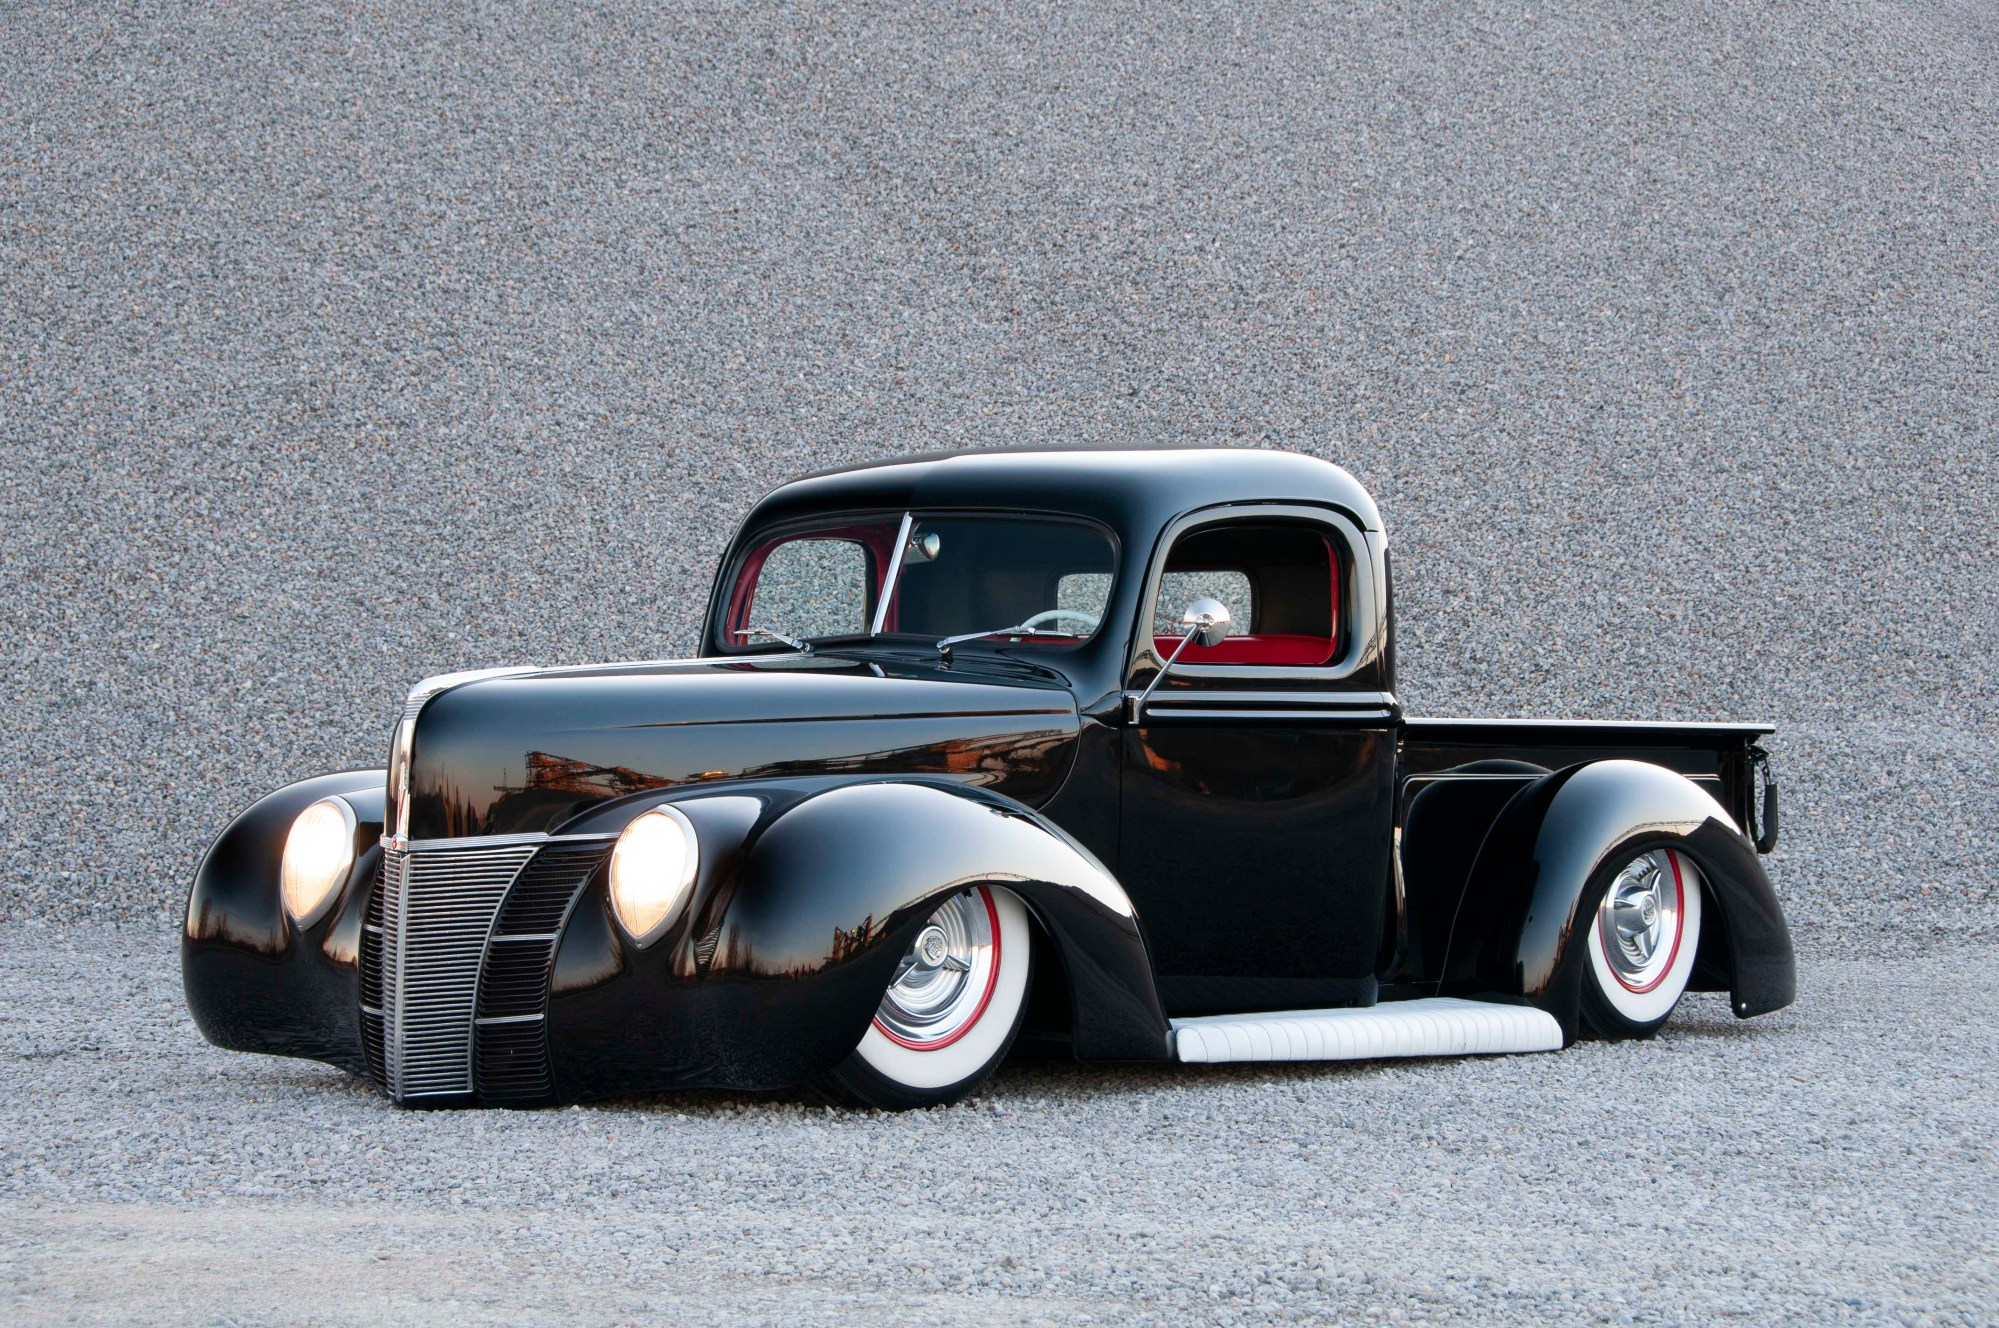 hight resolution of this 1940 ford pickup was homebuilt with friends and family